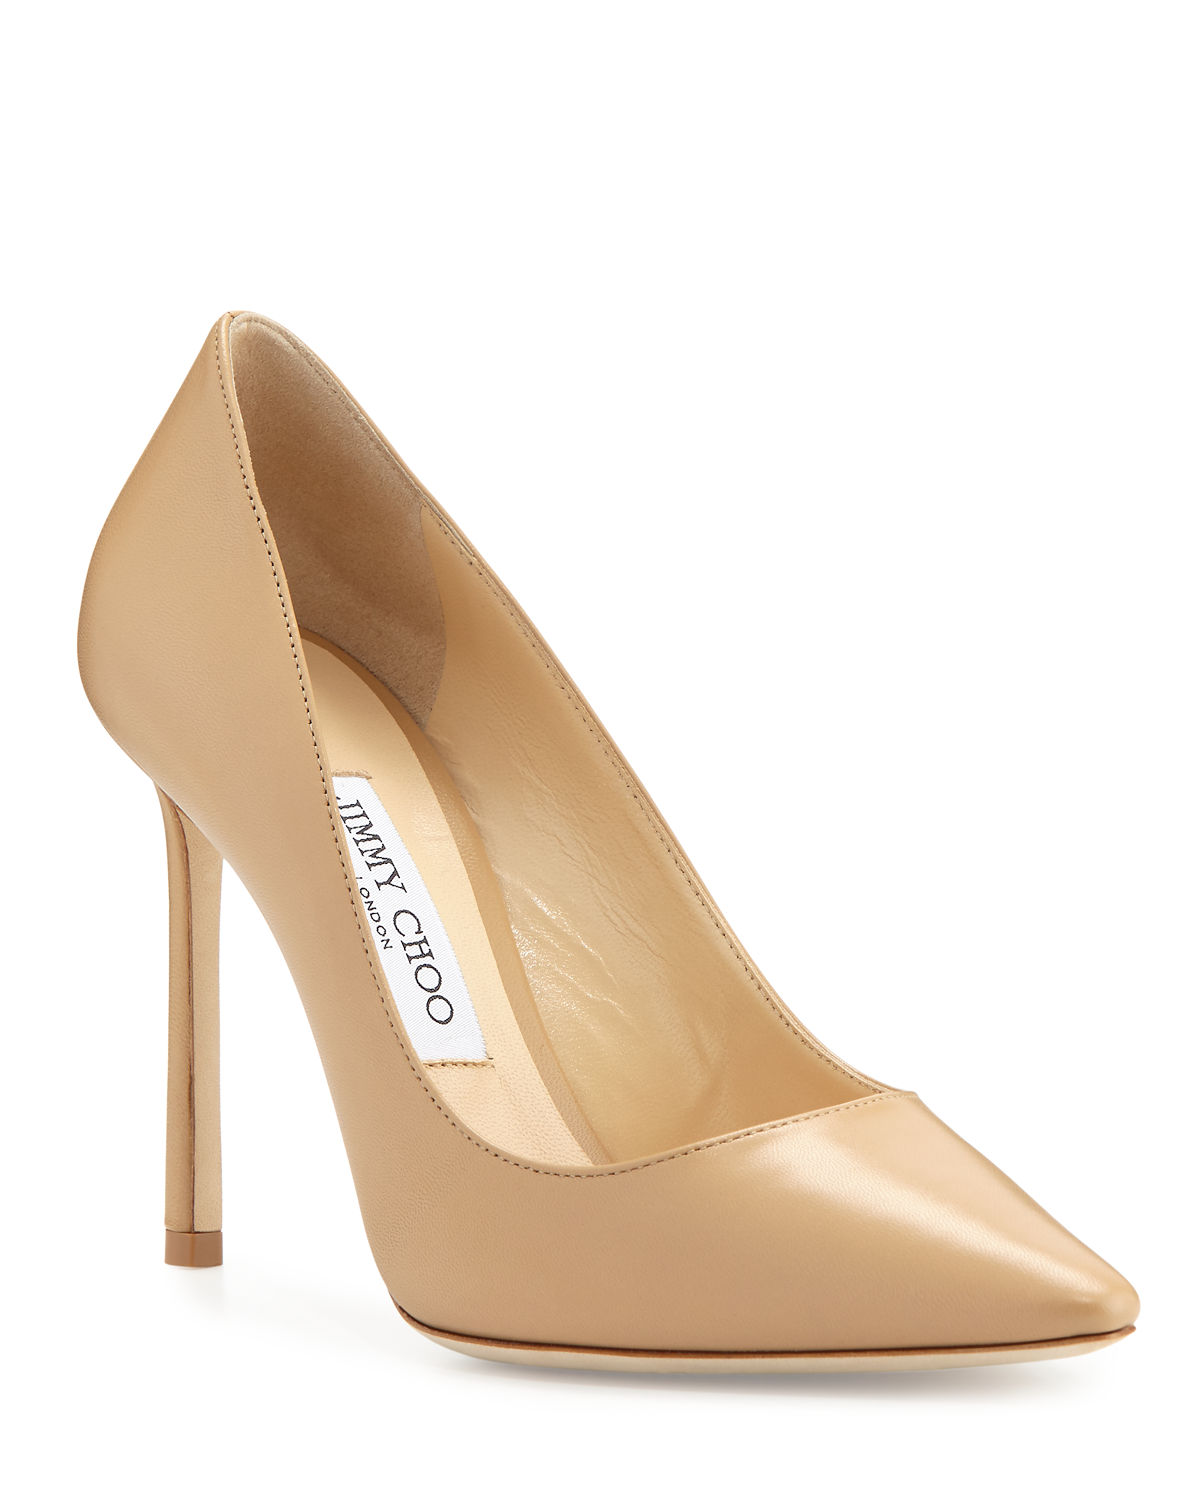 Romy 100mm Leather Pumps